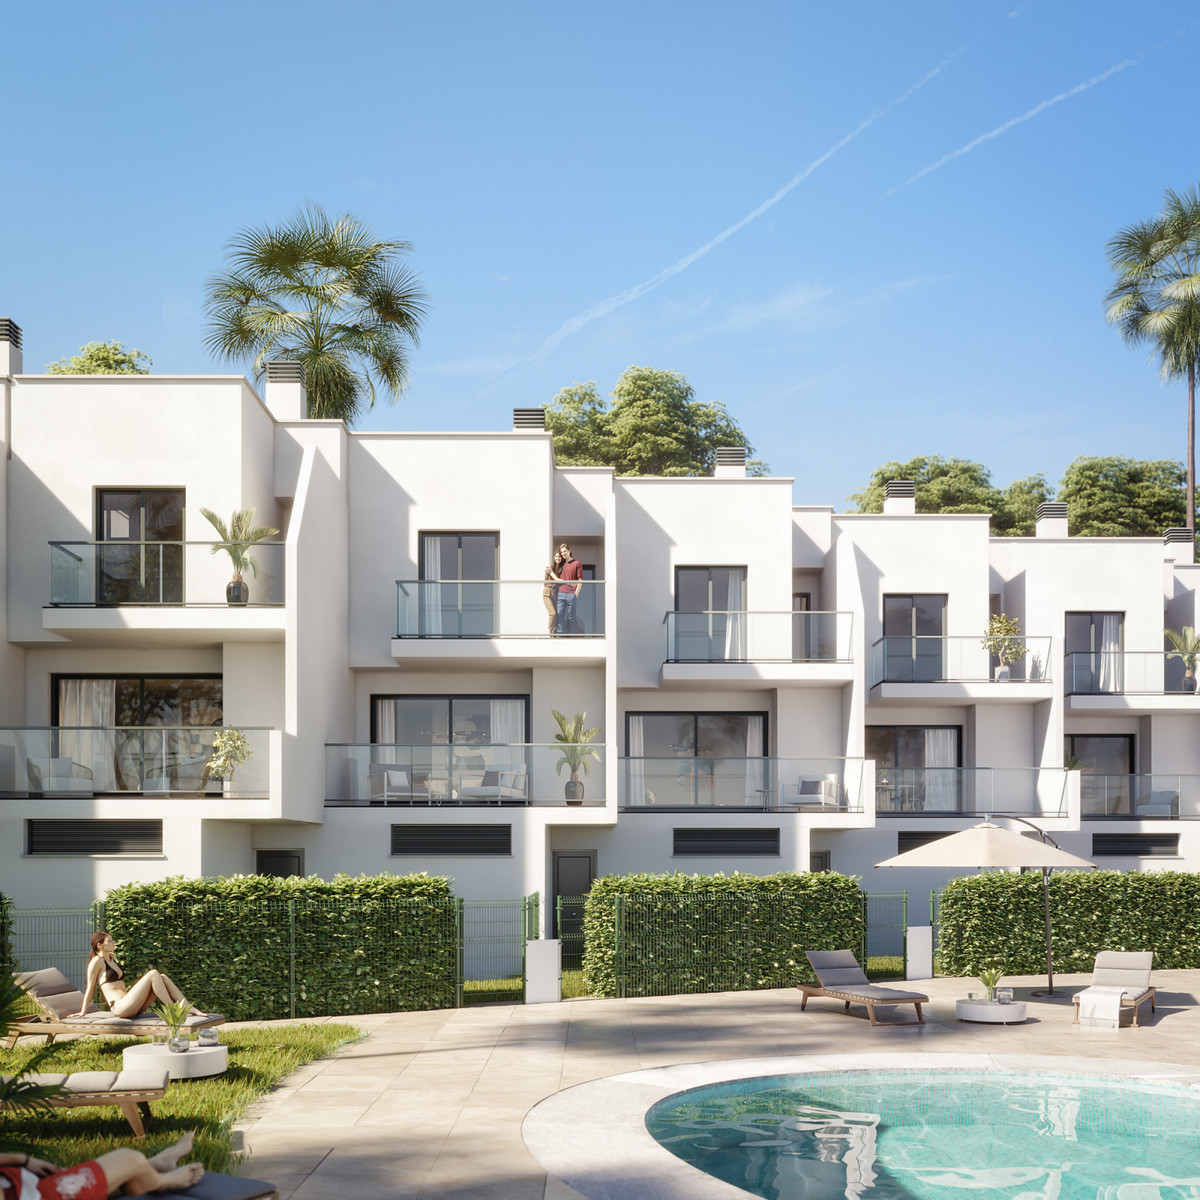 New Development: Prices from € 275,000 to € 315,000. [Beds: 3 - 3] [Baths: 3 - 4] [Built s, Spain